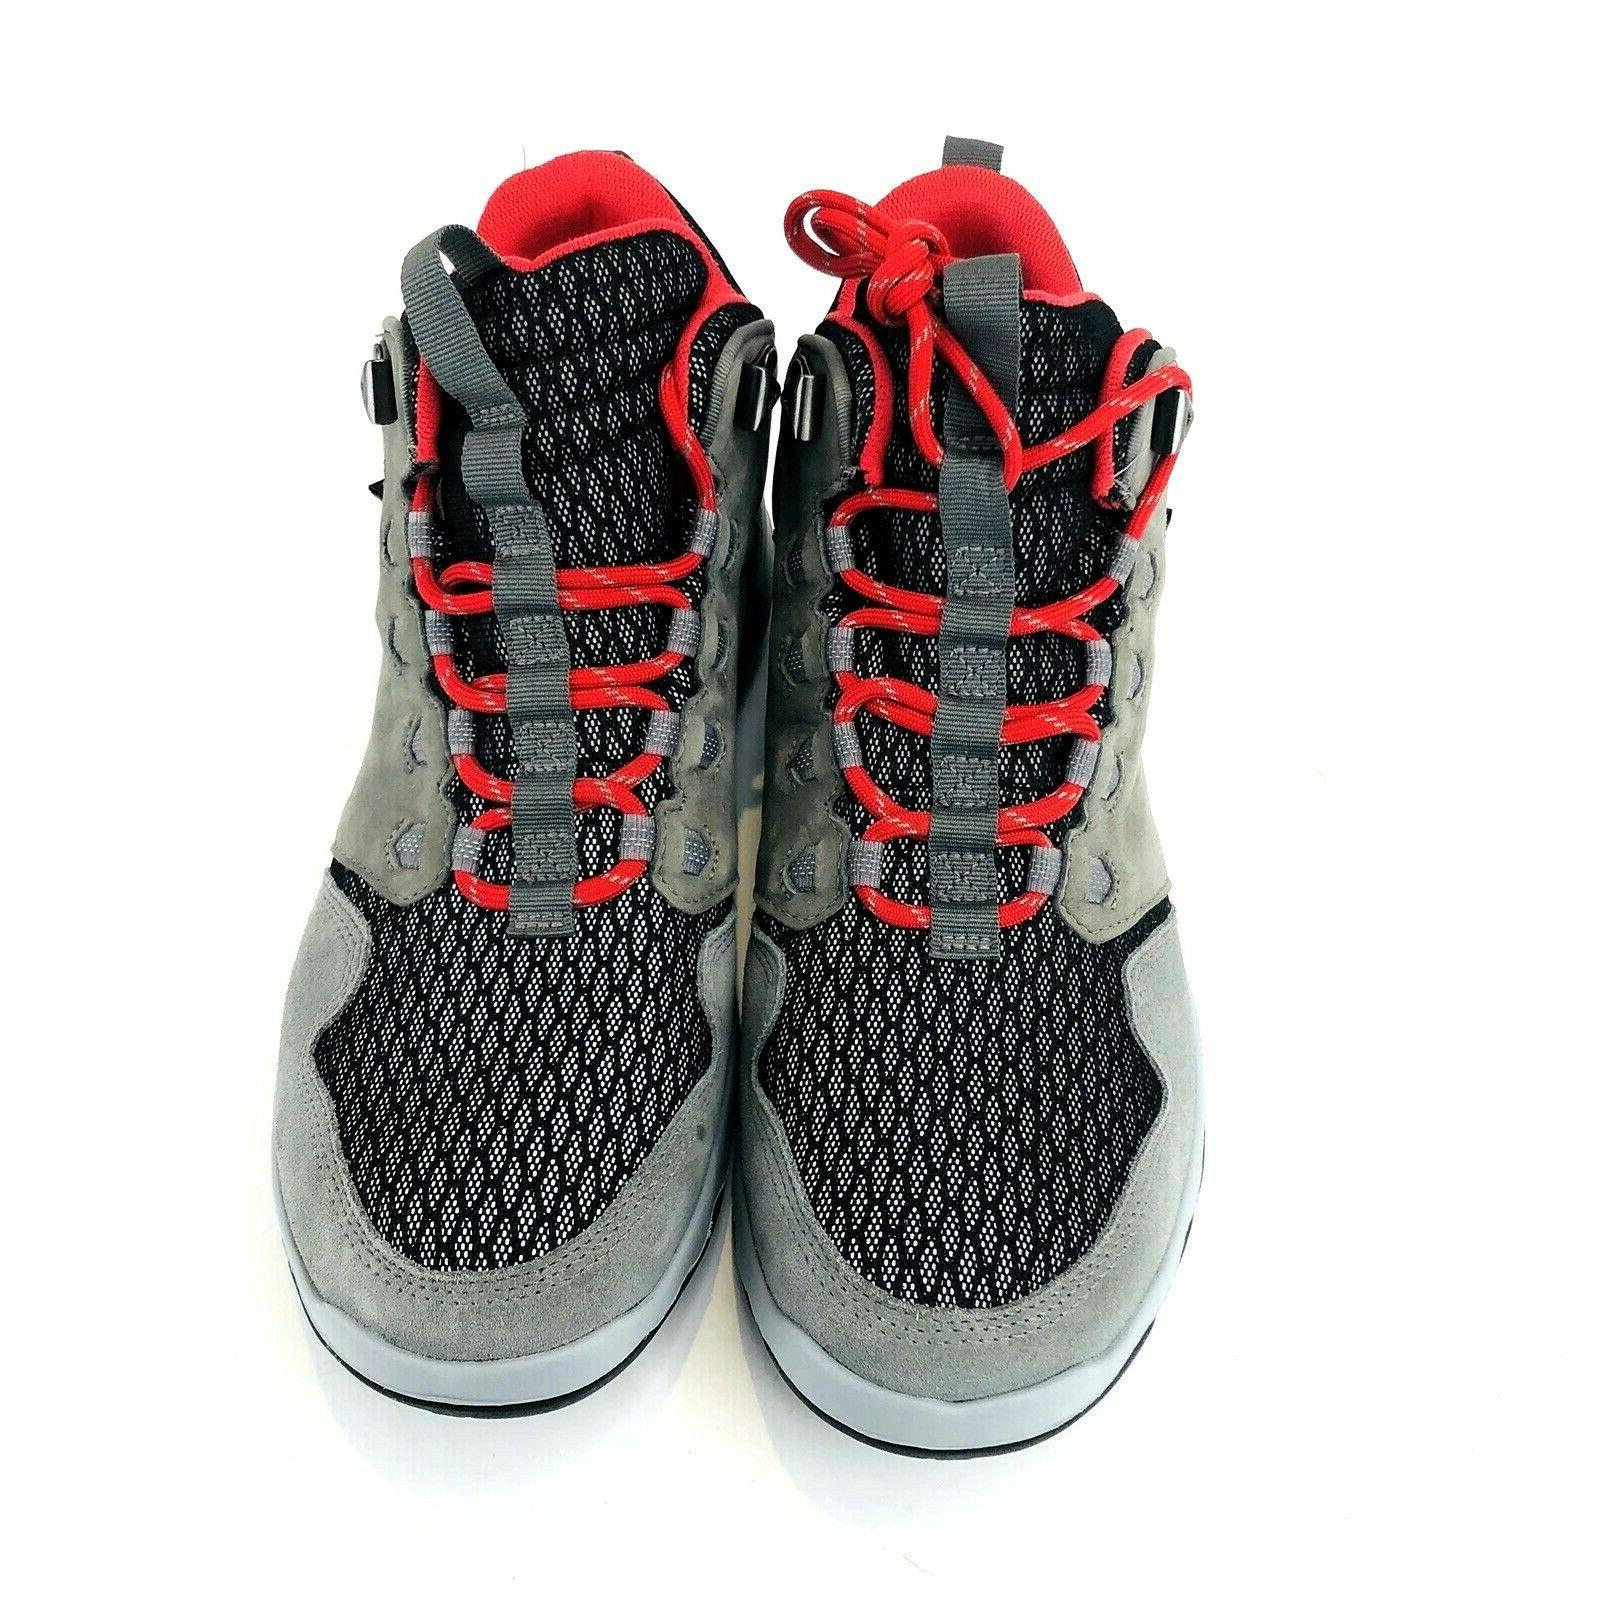 NEW Size 11 Waterproof Hiking Boots $150